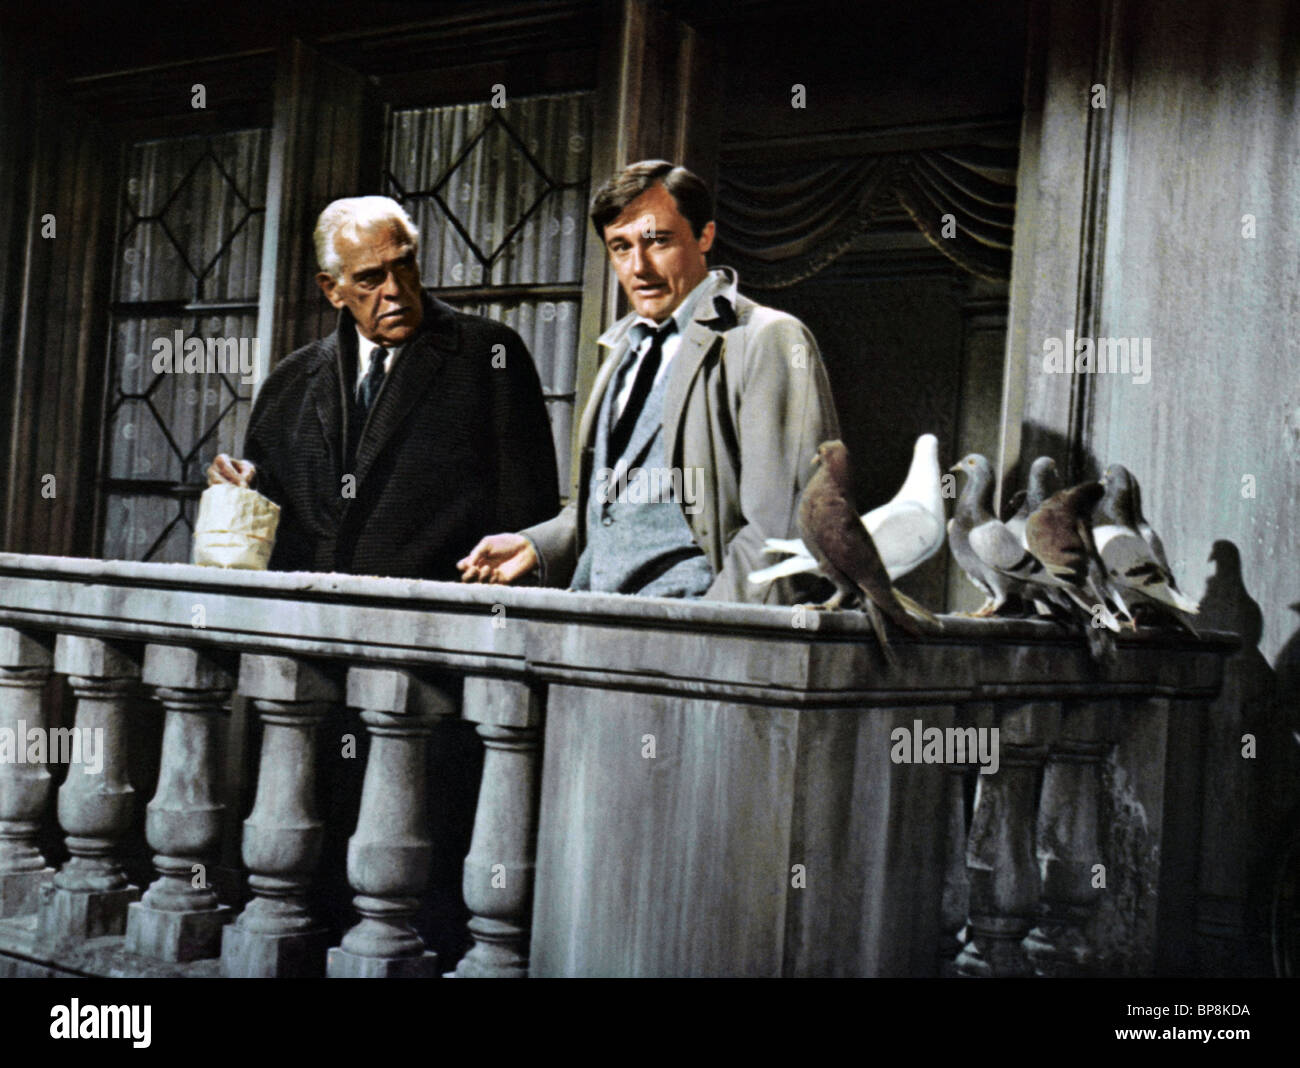 BORIS KARLOFF, ROBERT VAUGHN, THE VENETIAN AFFAIR, 1966 - Stock Image